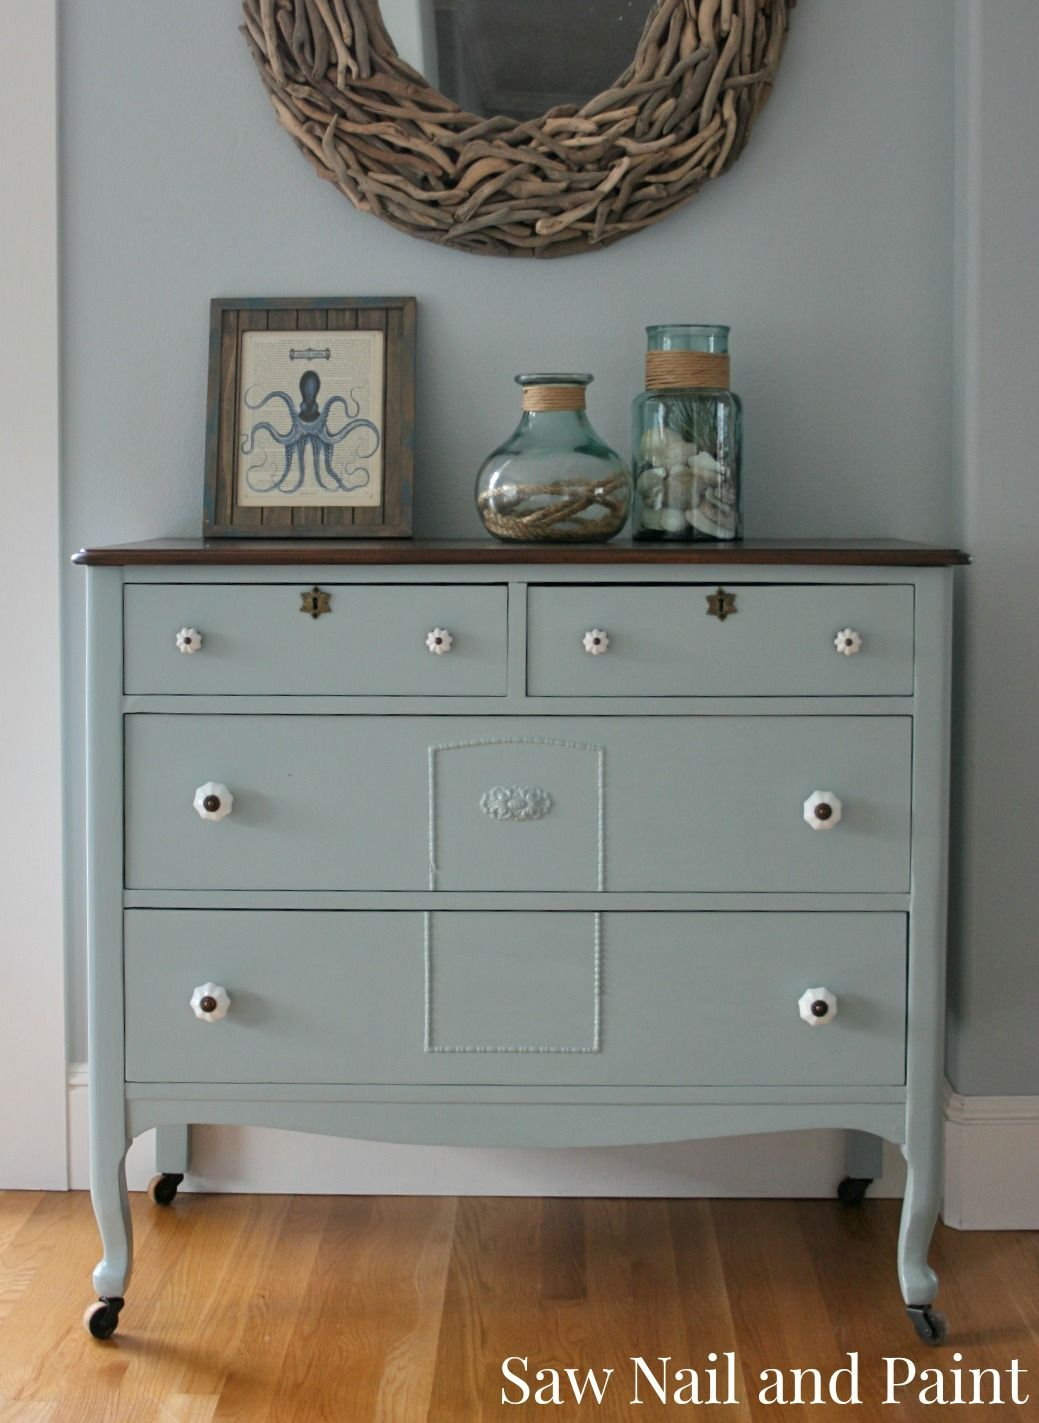 of General Finishes Milk Paint-Blue antique applique dresser 2 - Antique Dresser In Seattle Skies General Finishes, Milk Paint And